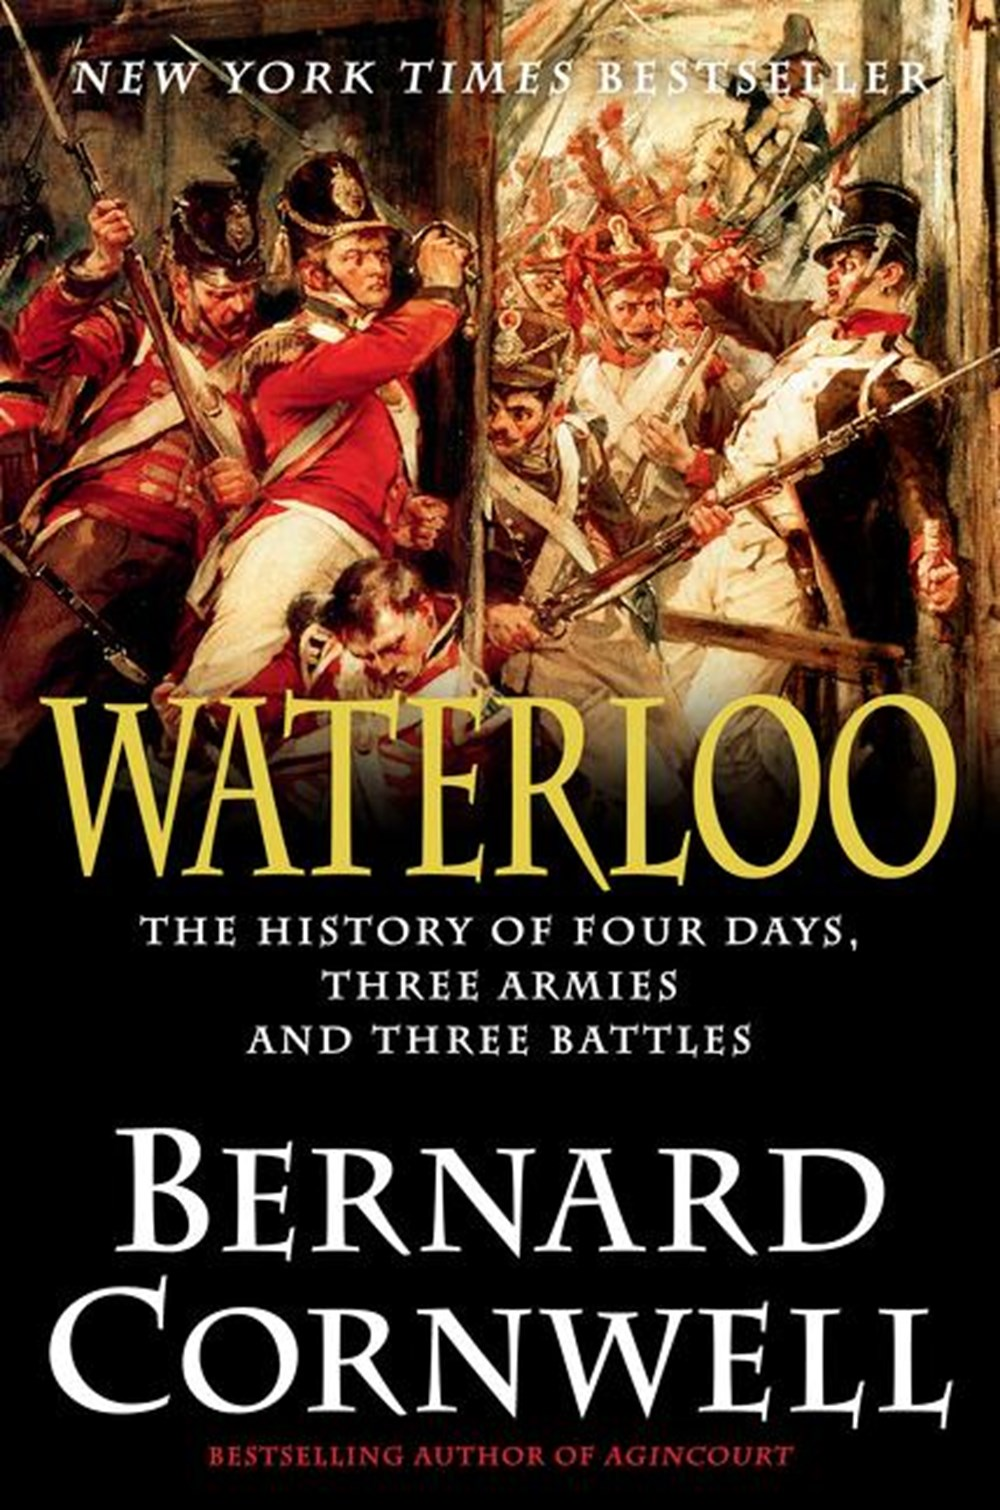 Waterloo The History of Four Days, Three Armies, and Three Battles